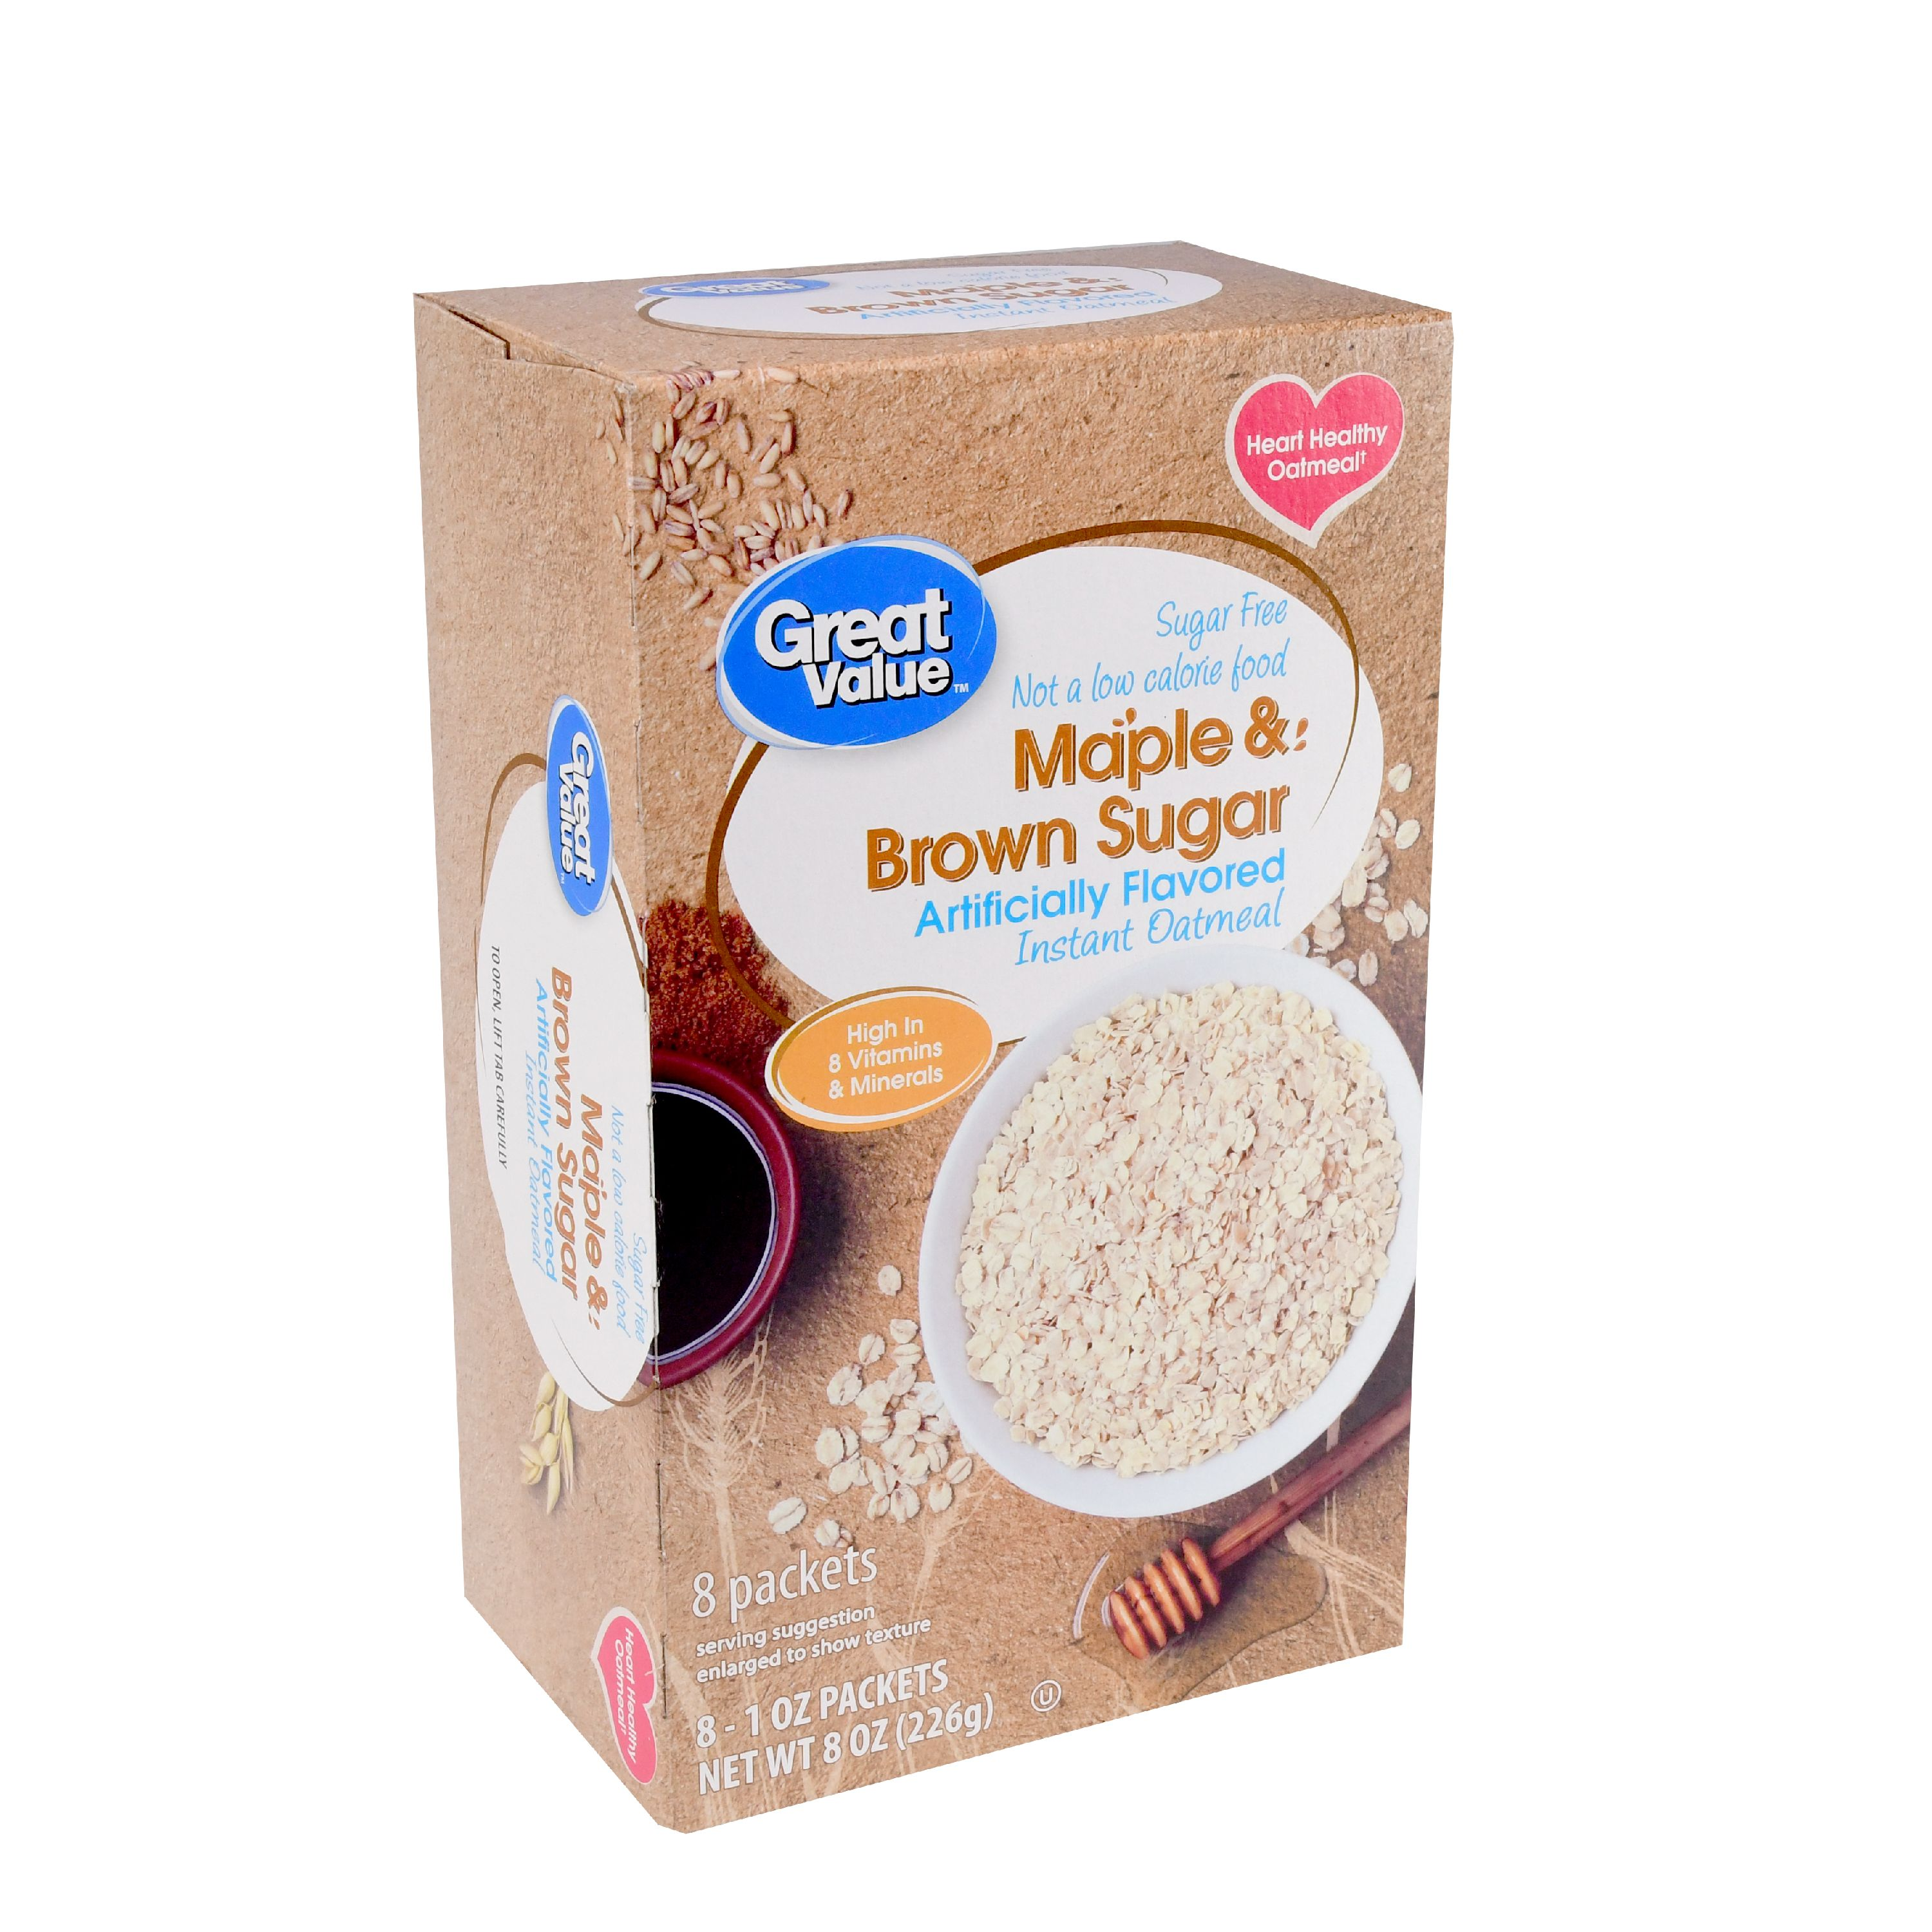 Great Value Instant Oatmeal, Maple & Brown Sugar, 8 oz, 8 Count